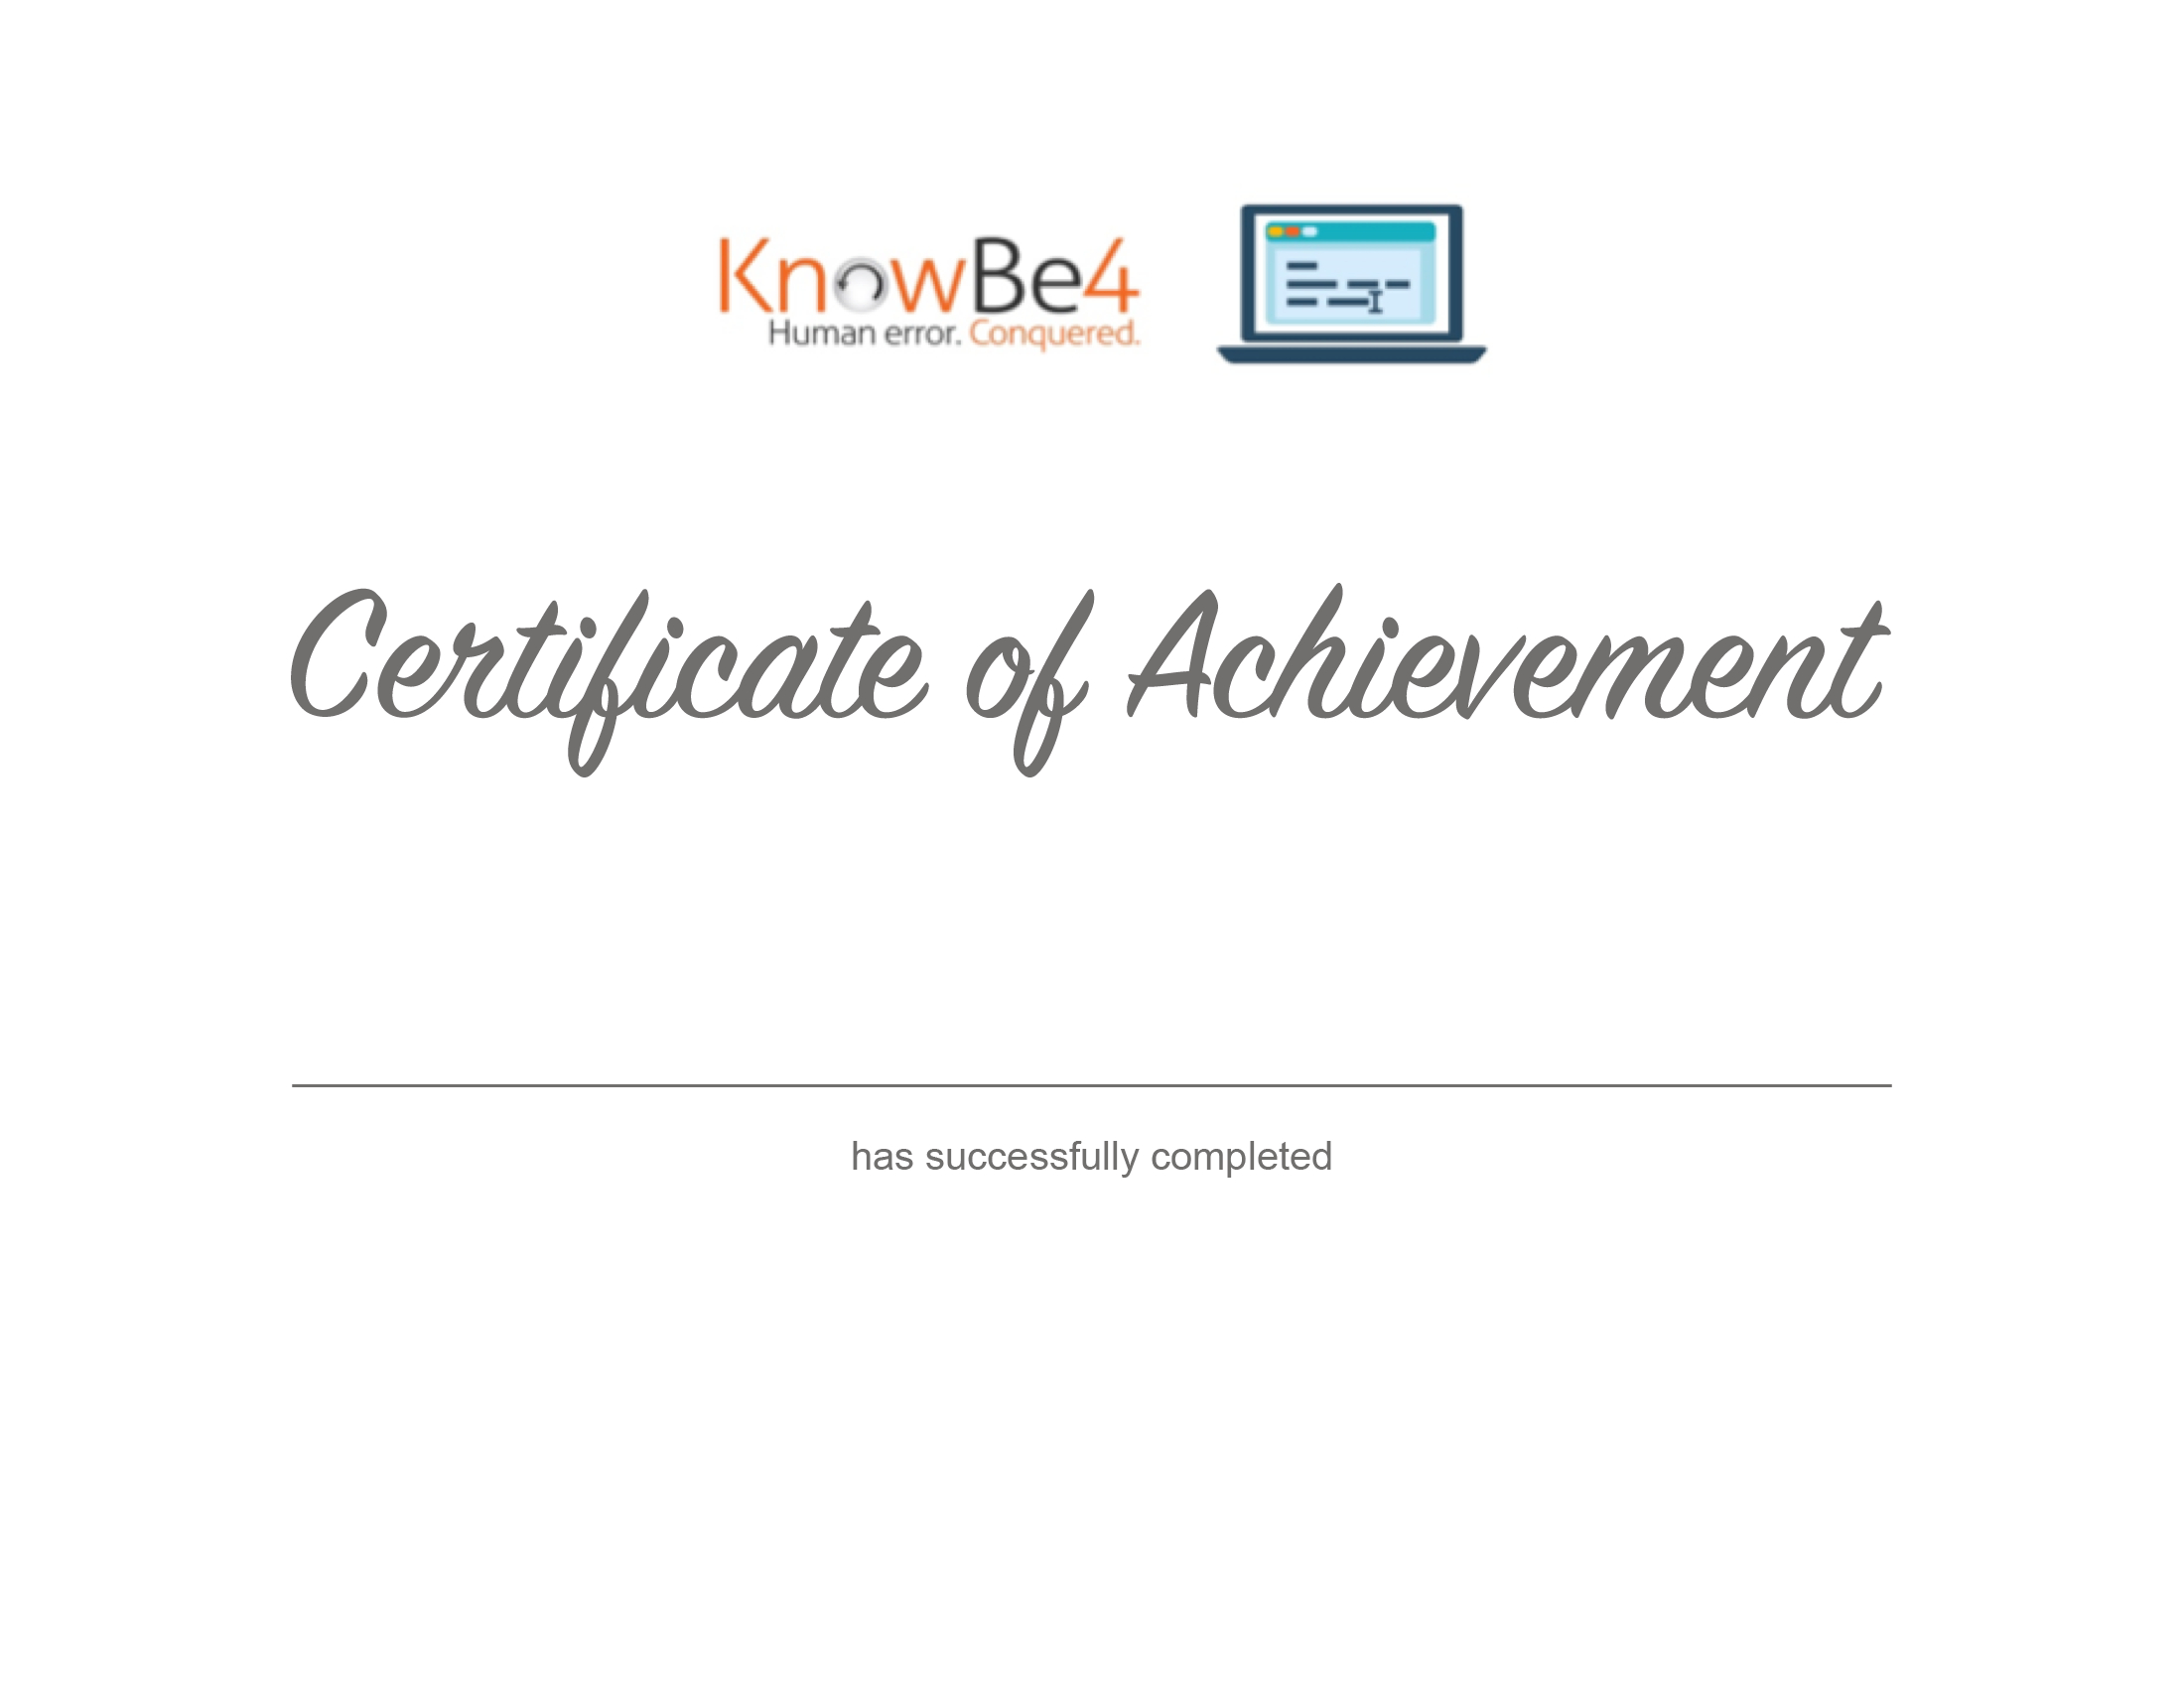 How Do I Customize My Users' Training Certificates for No Certificate Templates Could Be Found